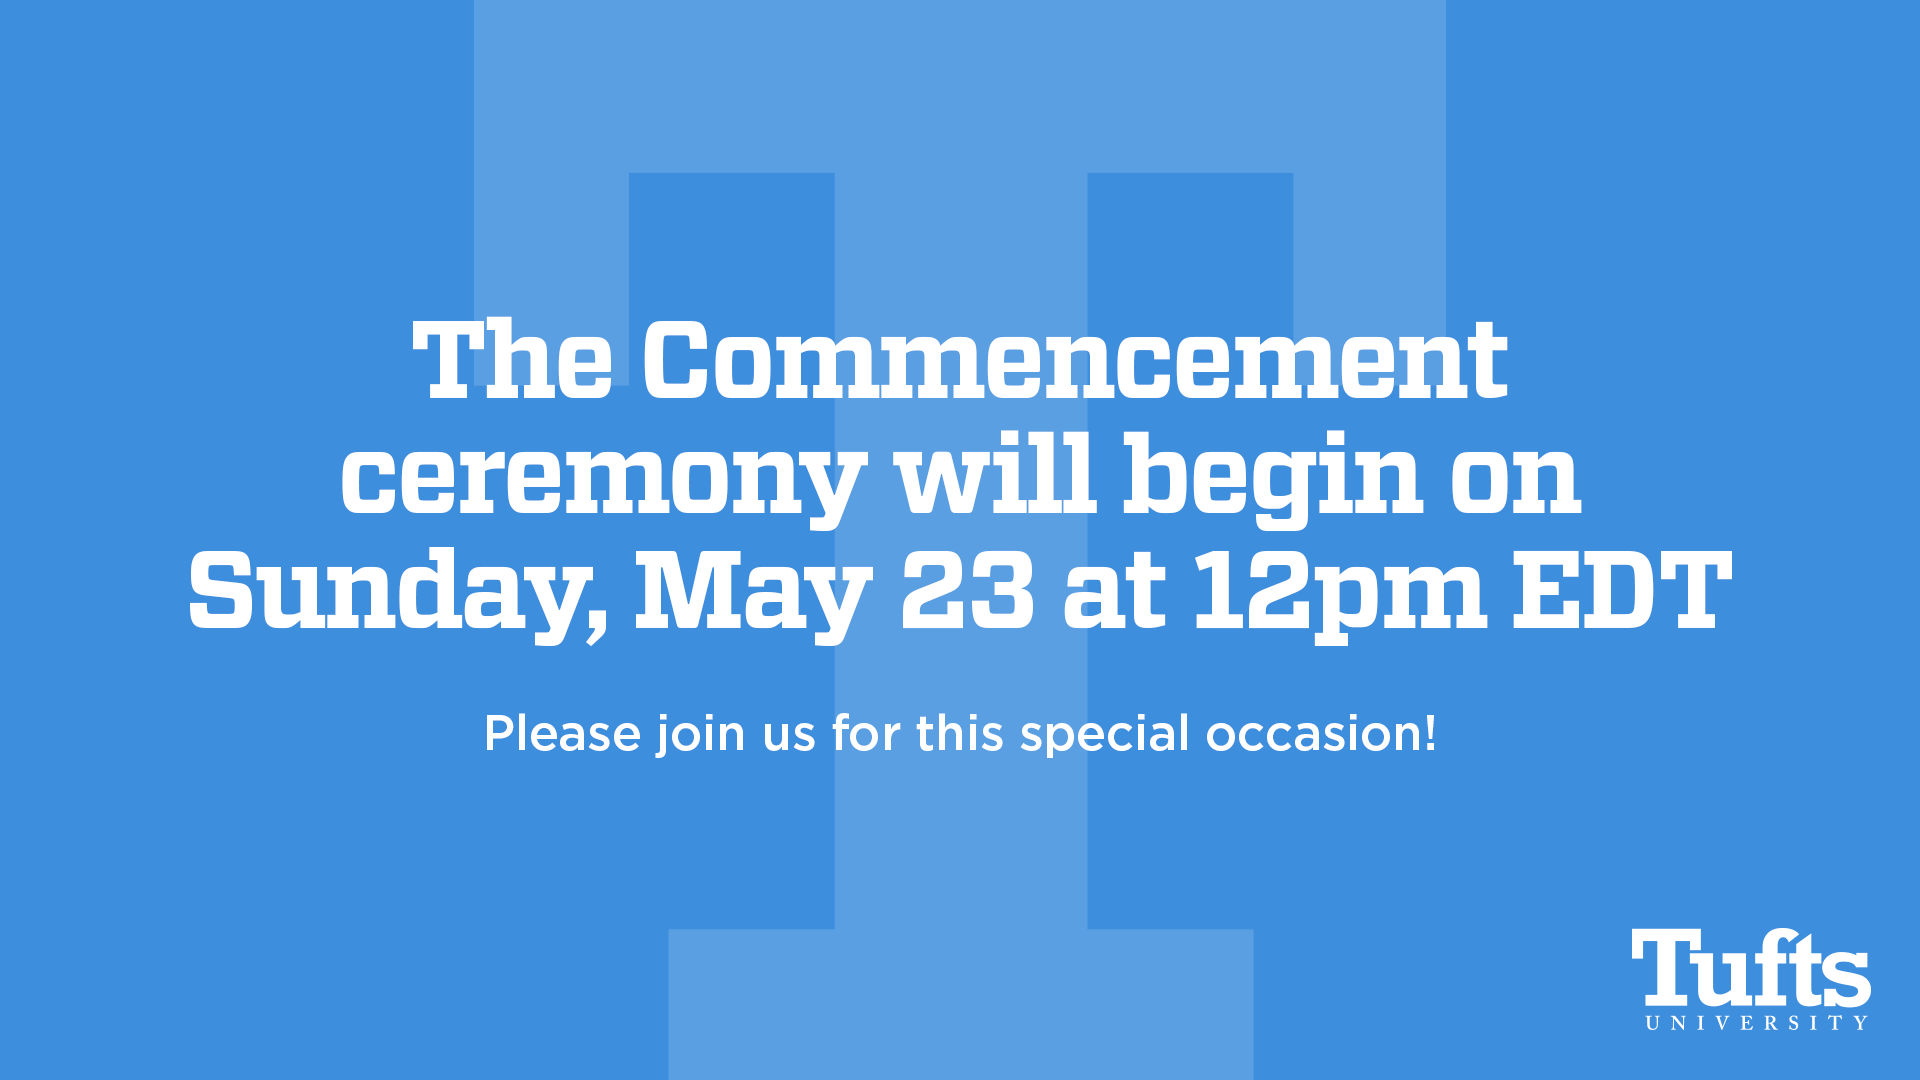 The Commencement ceremony will begin on Sunday, May 23 at 12 p.m. EDT